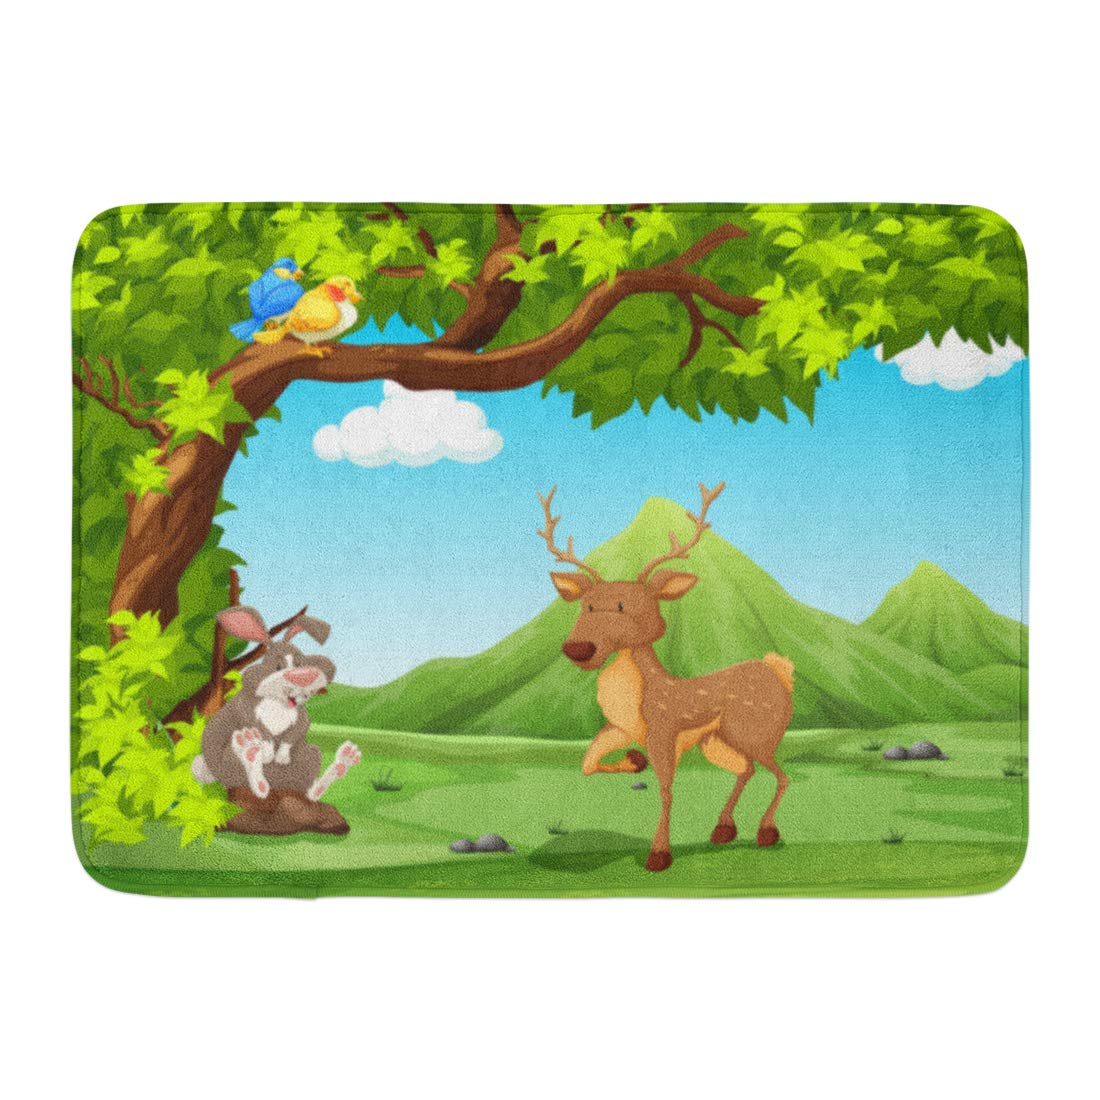 GODPOK Deer Talking Scenery of Animals Sitting Under Big Tree Clipart Junle  Rug Doormat Bath Mat 23.6x15.7 inch.